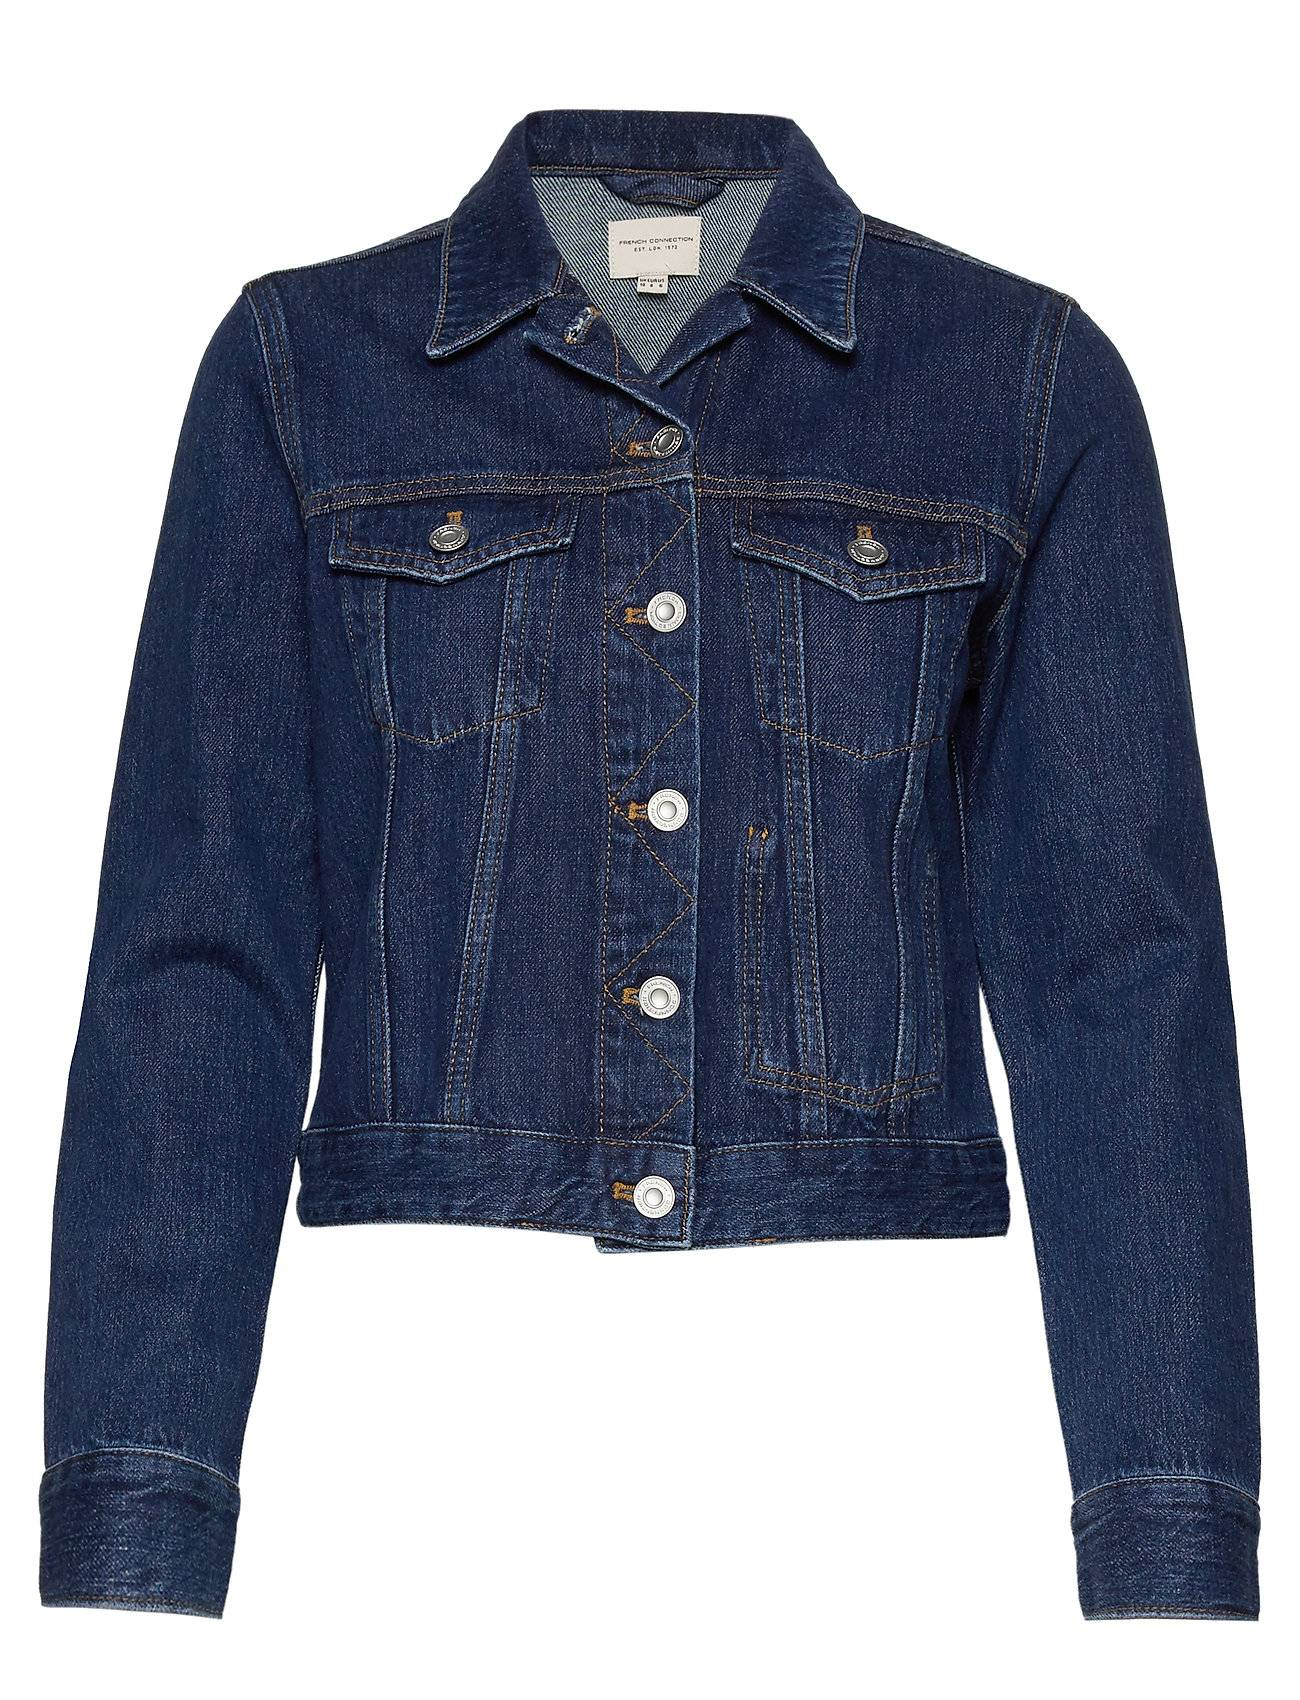 French Connection Macee Micro Wstrn Denim Ls Jkt Farkkutakki Denimtakki Sininen French Connection